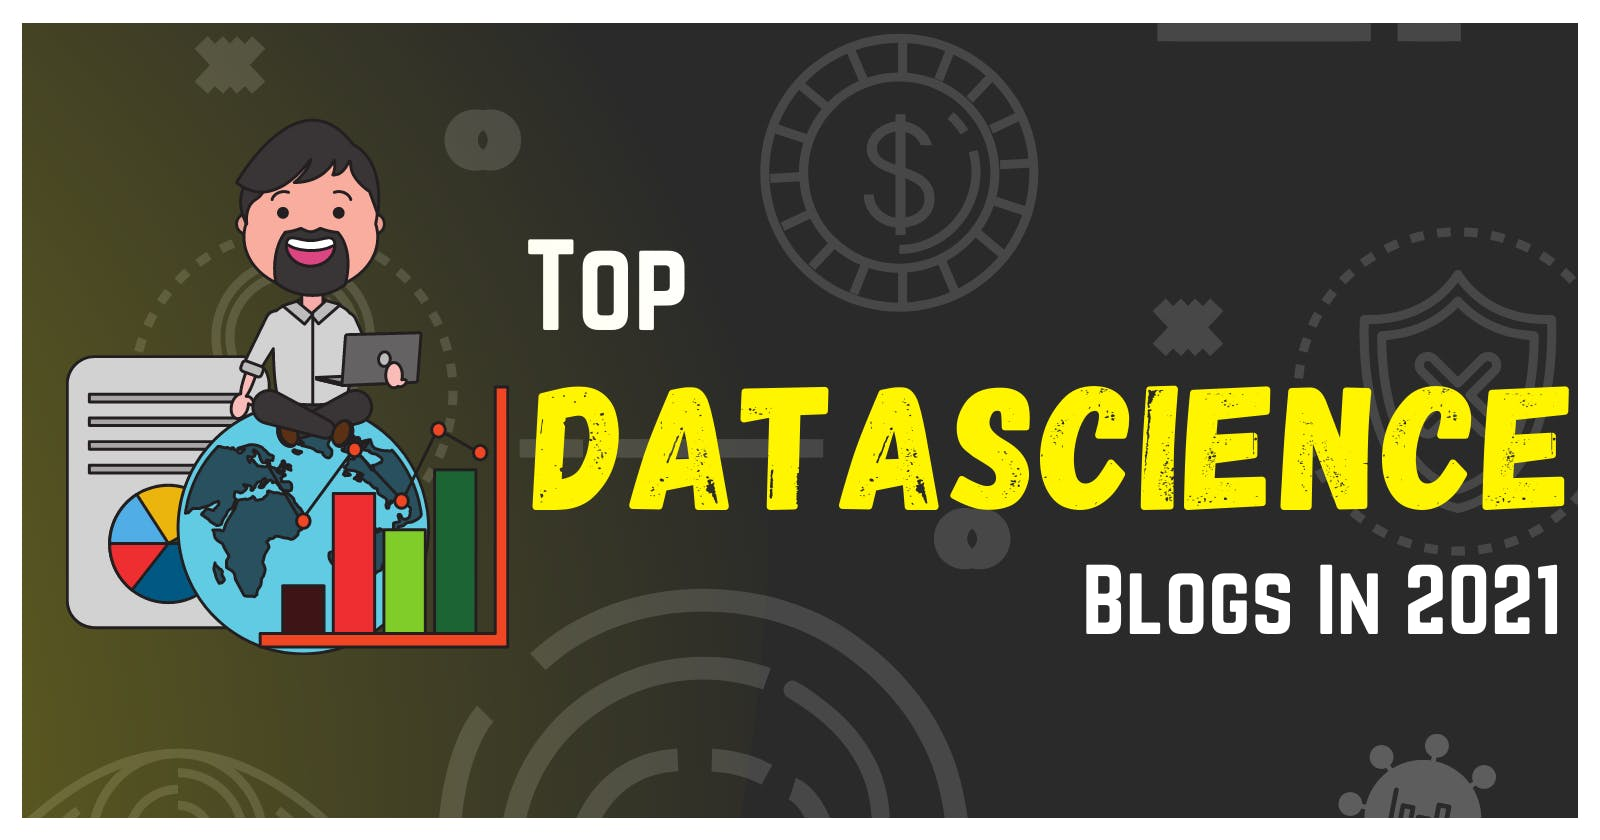 Top DataScience Blogs to follow in 2021